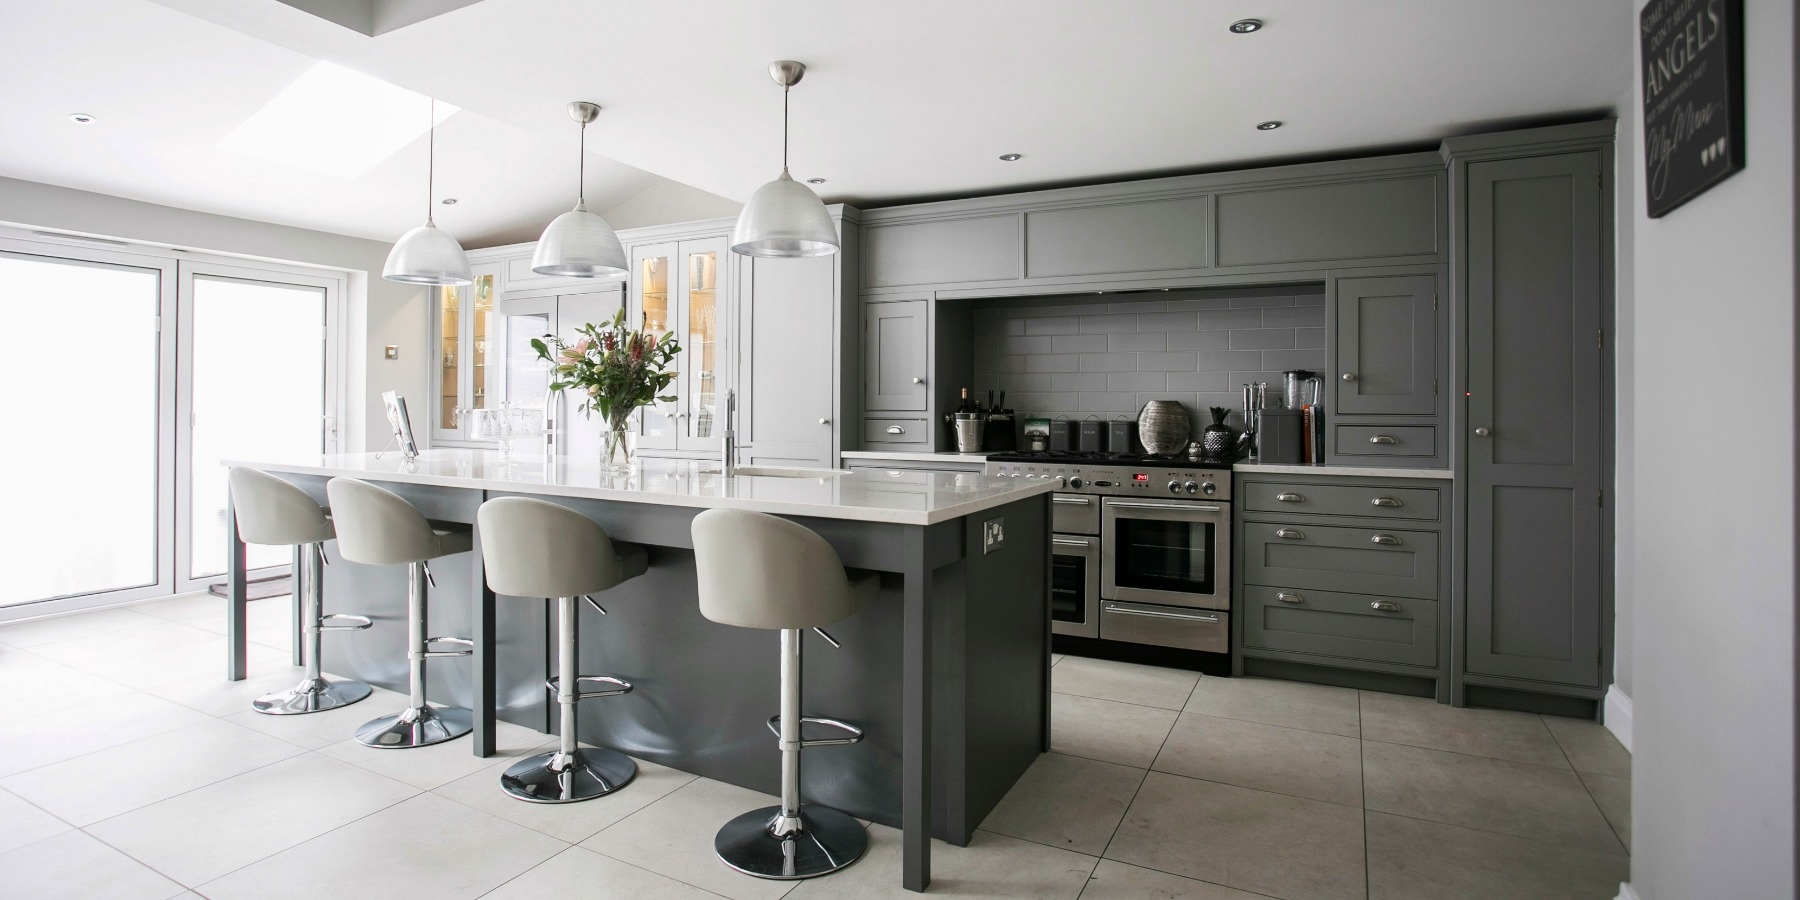 Luxury Shaker Kitchen - Burlanes bespoke grey Wellsdown kitchen with white worktops, glass cabinets and pendant lights.